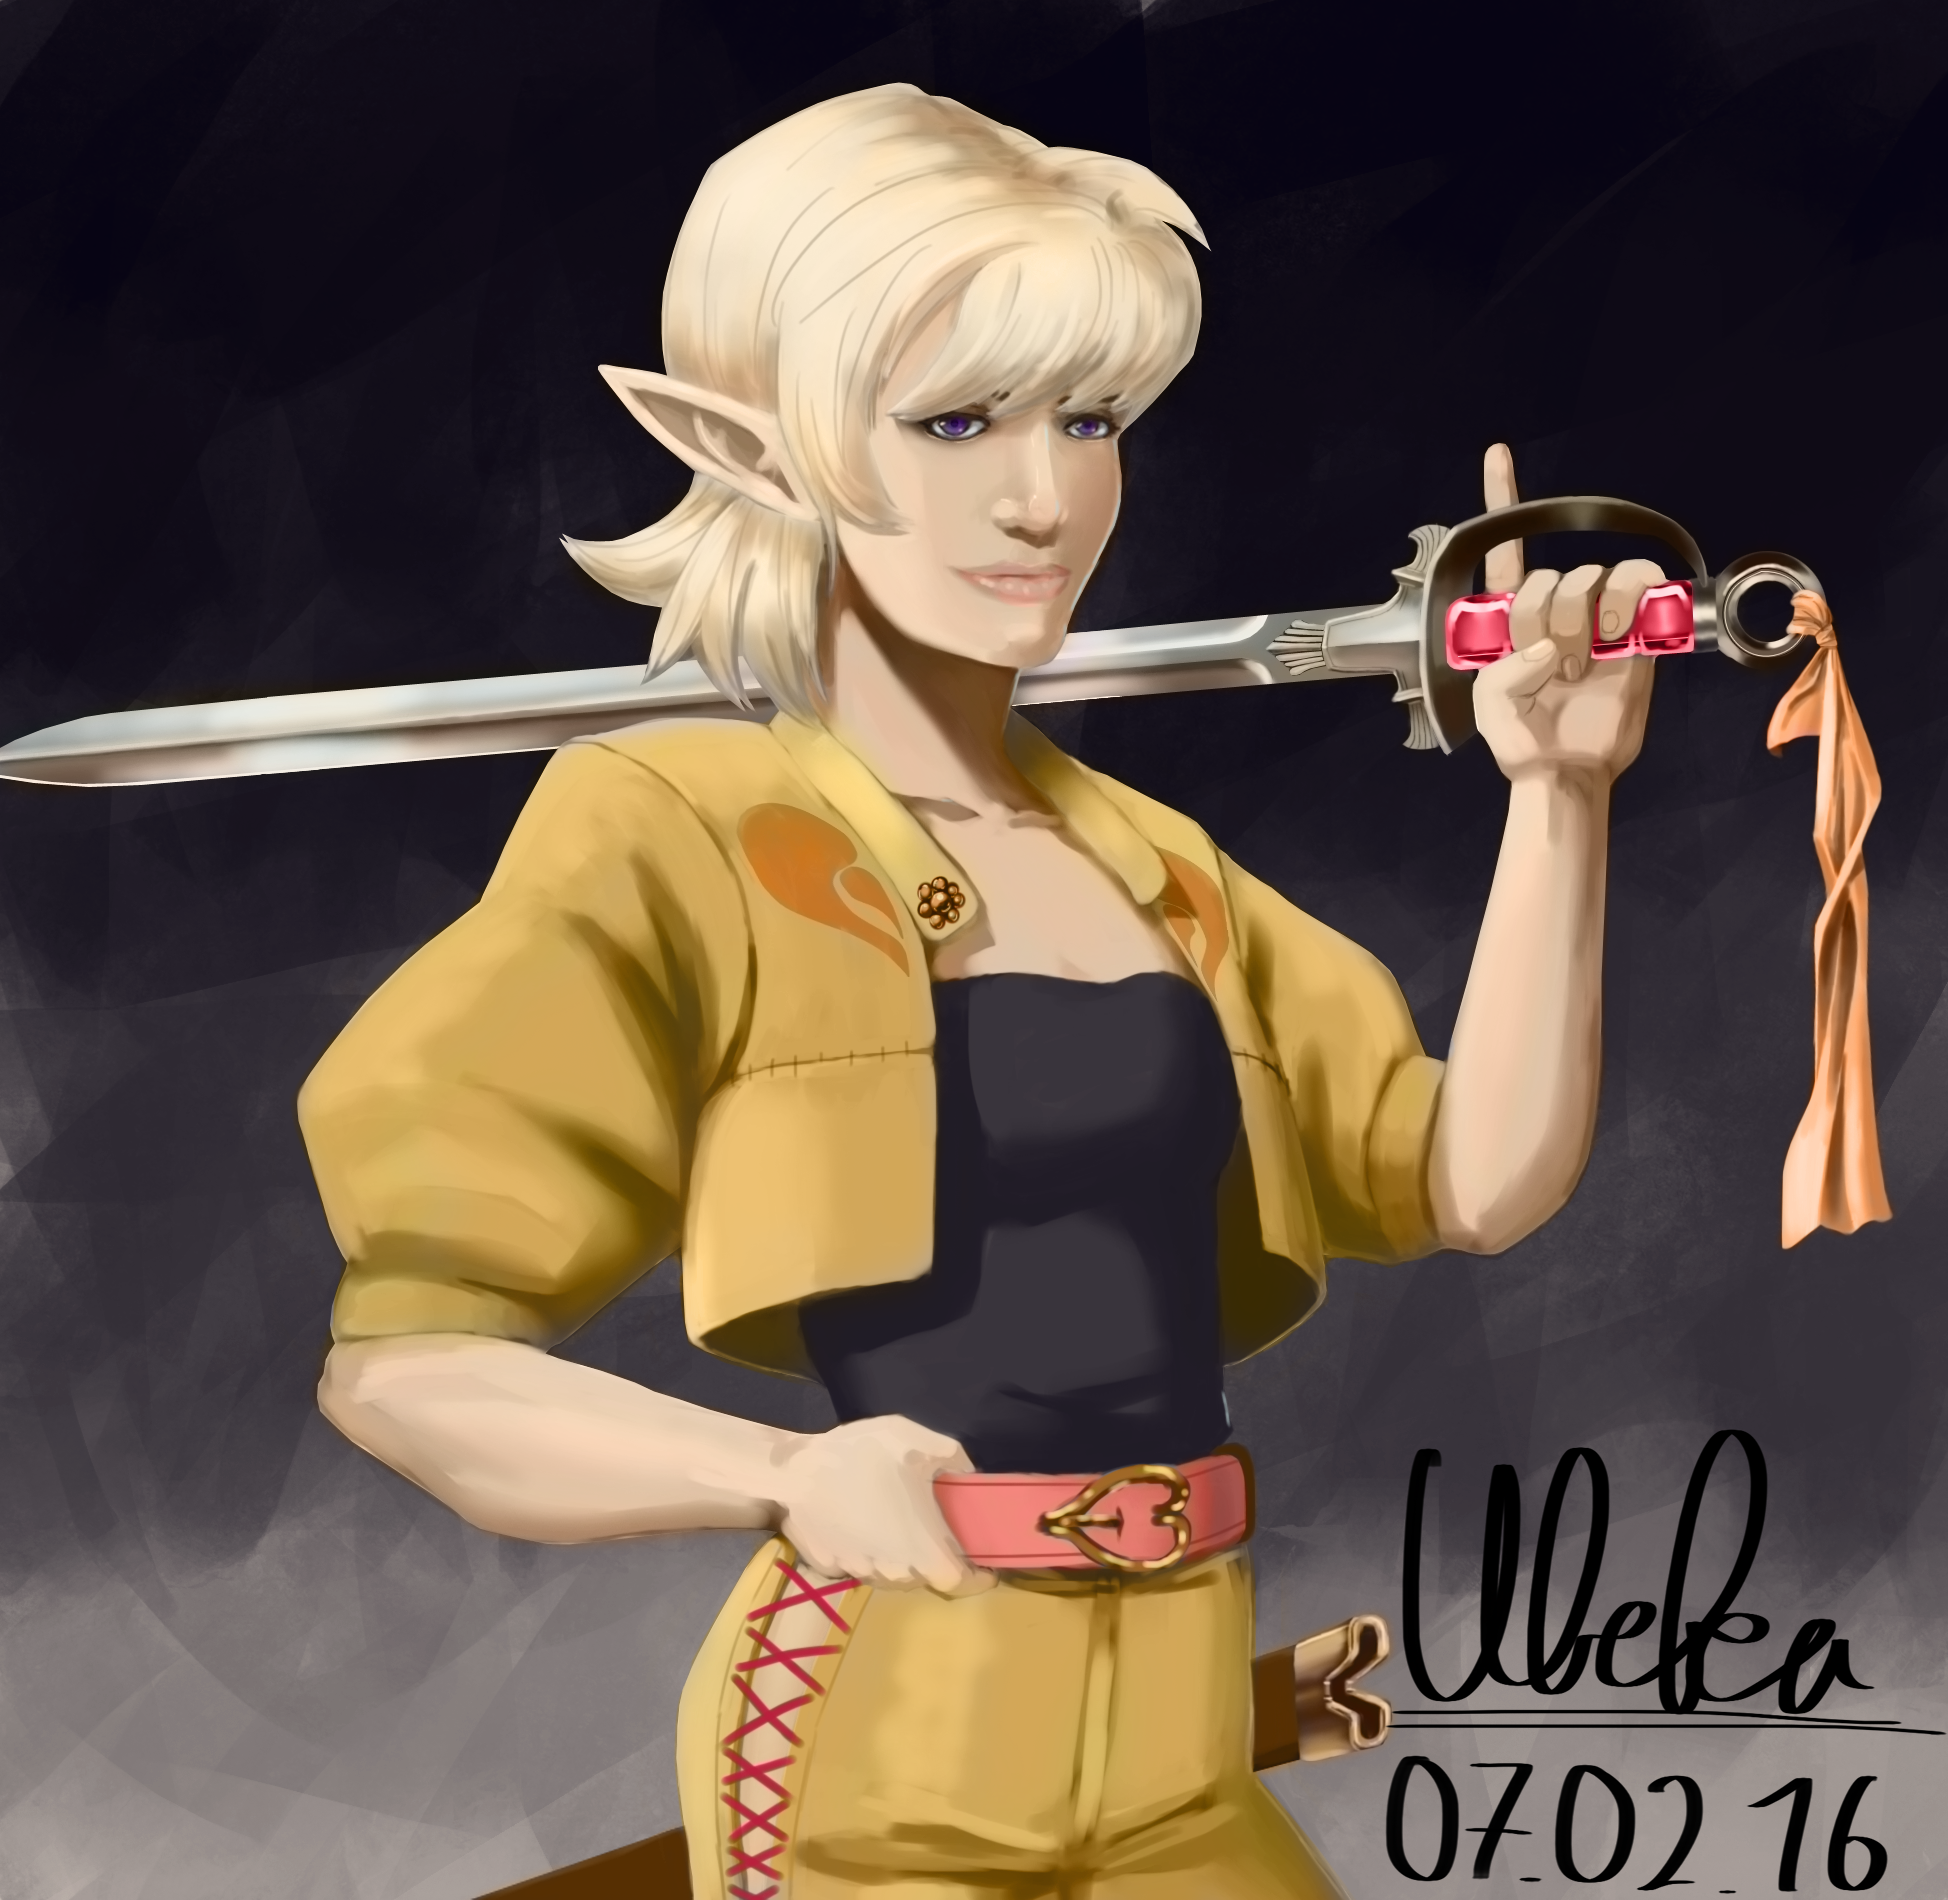 last_of_the_maresa_bloodline___zandera_maresa_by_ubeka-d9qvpcd.png